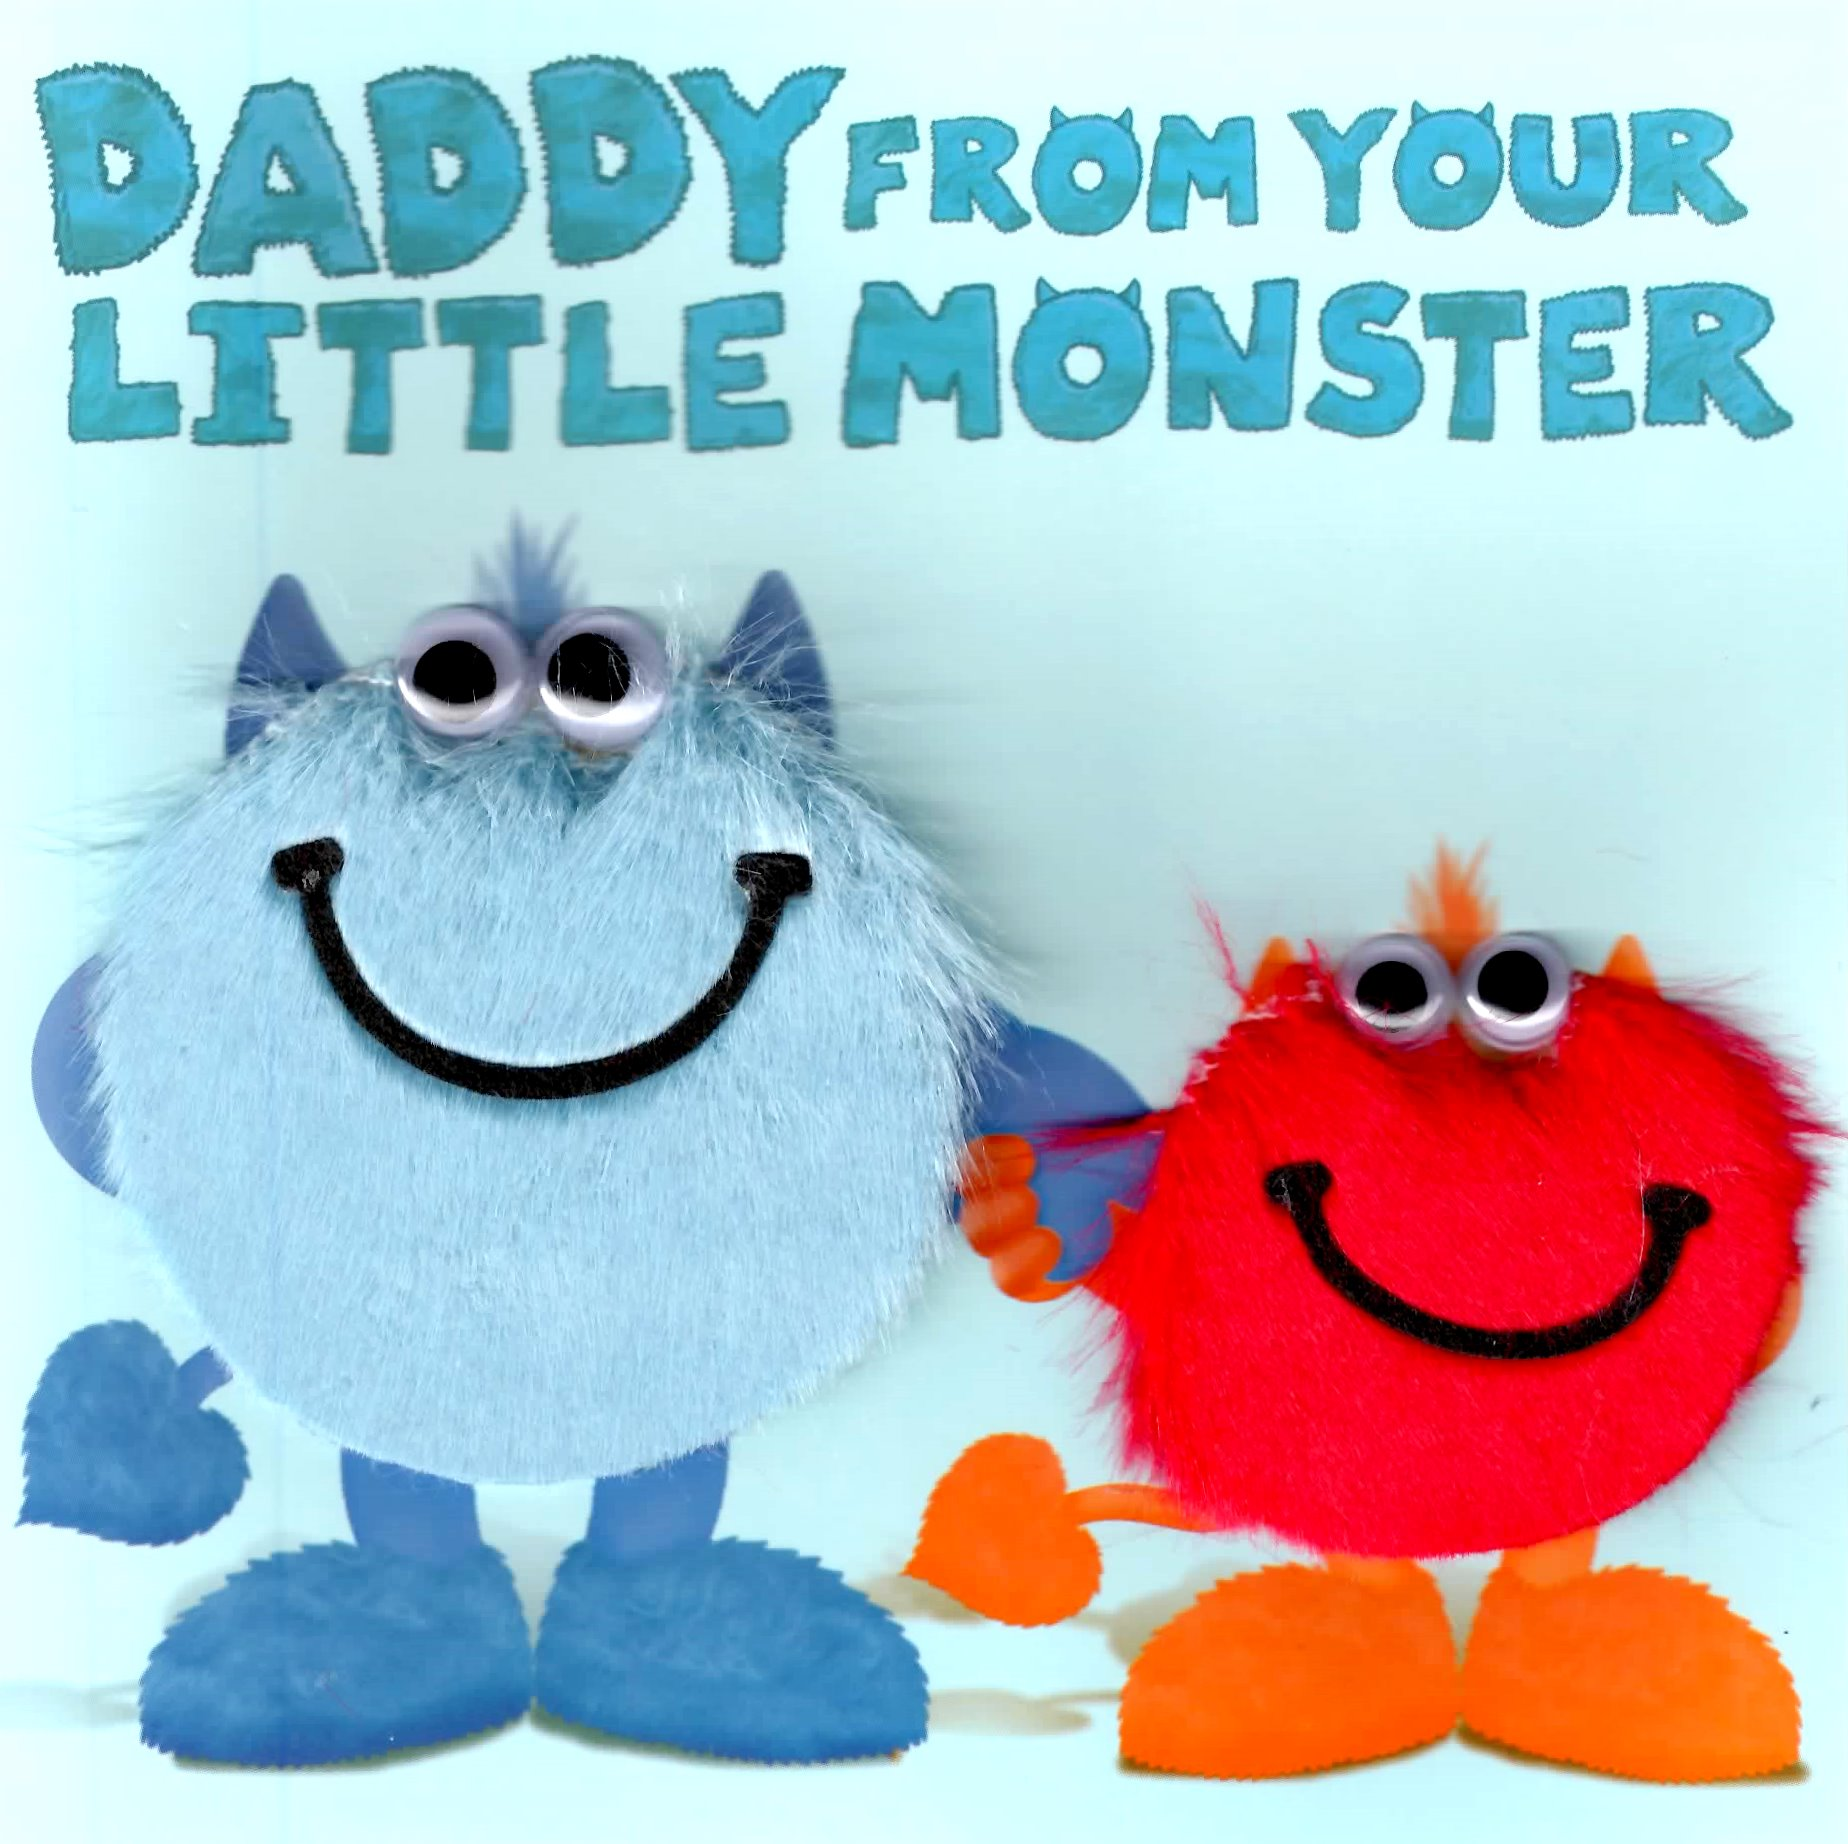 to daddy from your little monster happy birthday greeting card, Birthday card